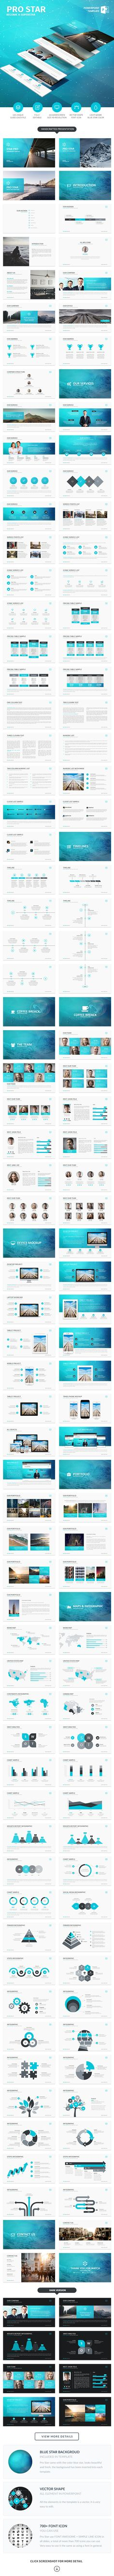 Simplicity premium and easy to edit template templates prostar powerpoint template toneelgroepblik Choice Image